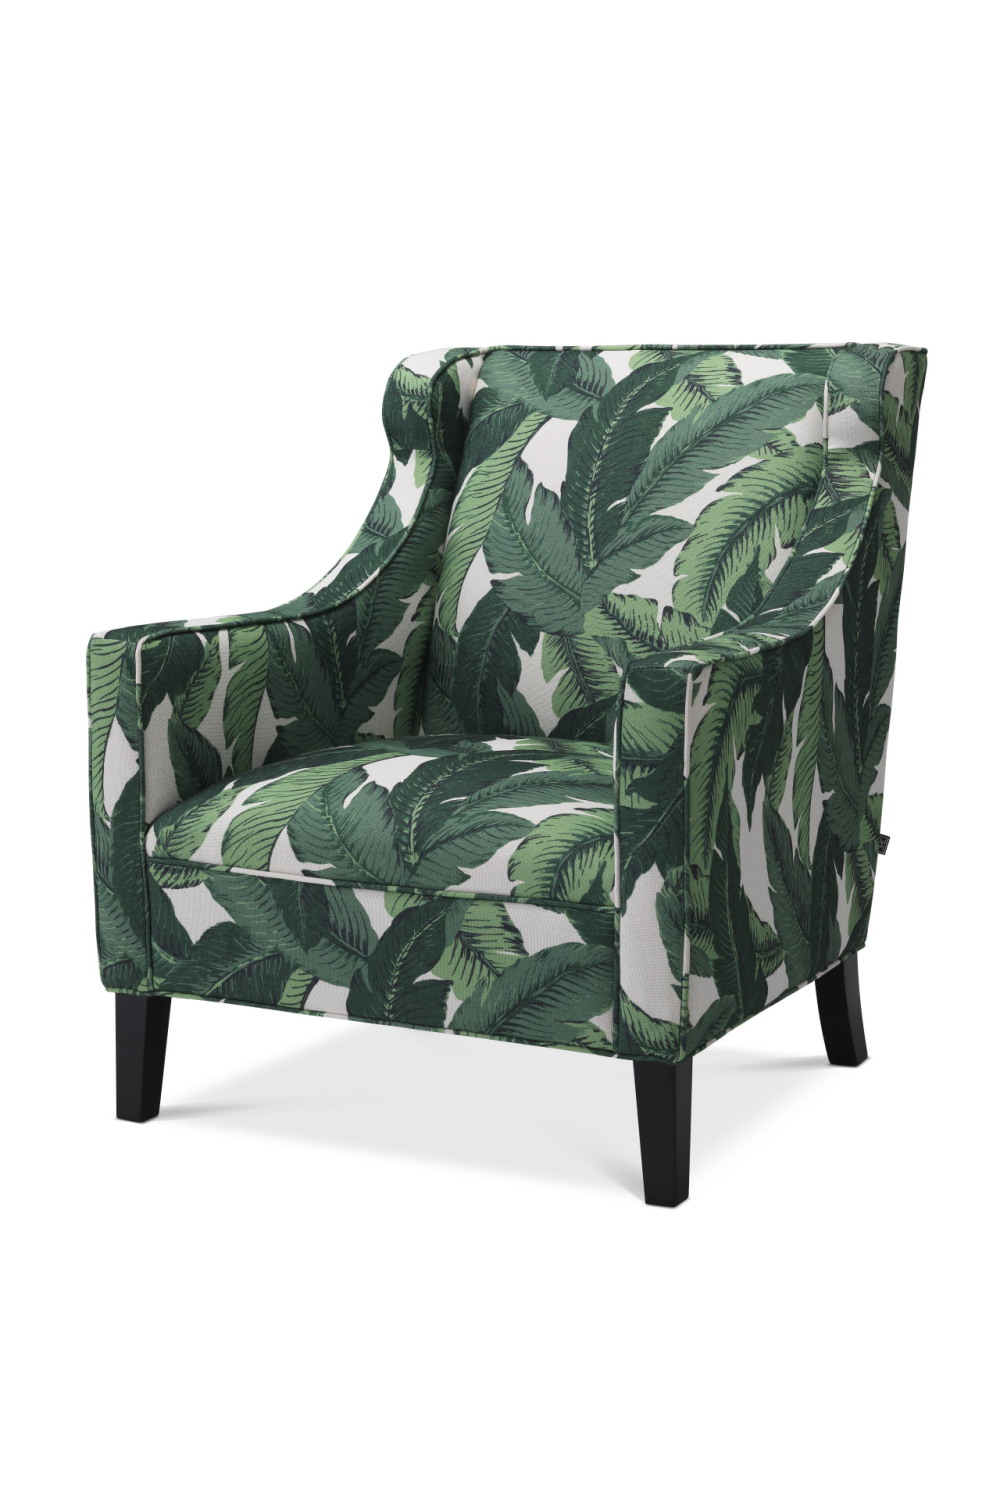 Tropical Green Accent Chair | Eichholtz Jenner | Woodfurniture.com